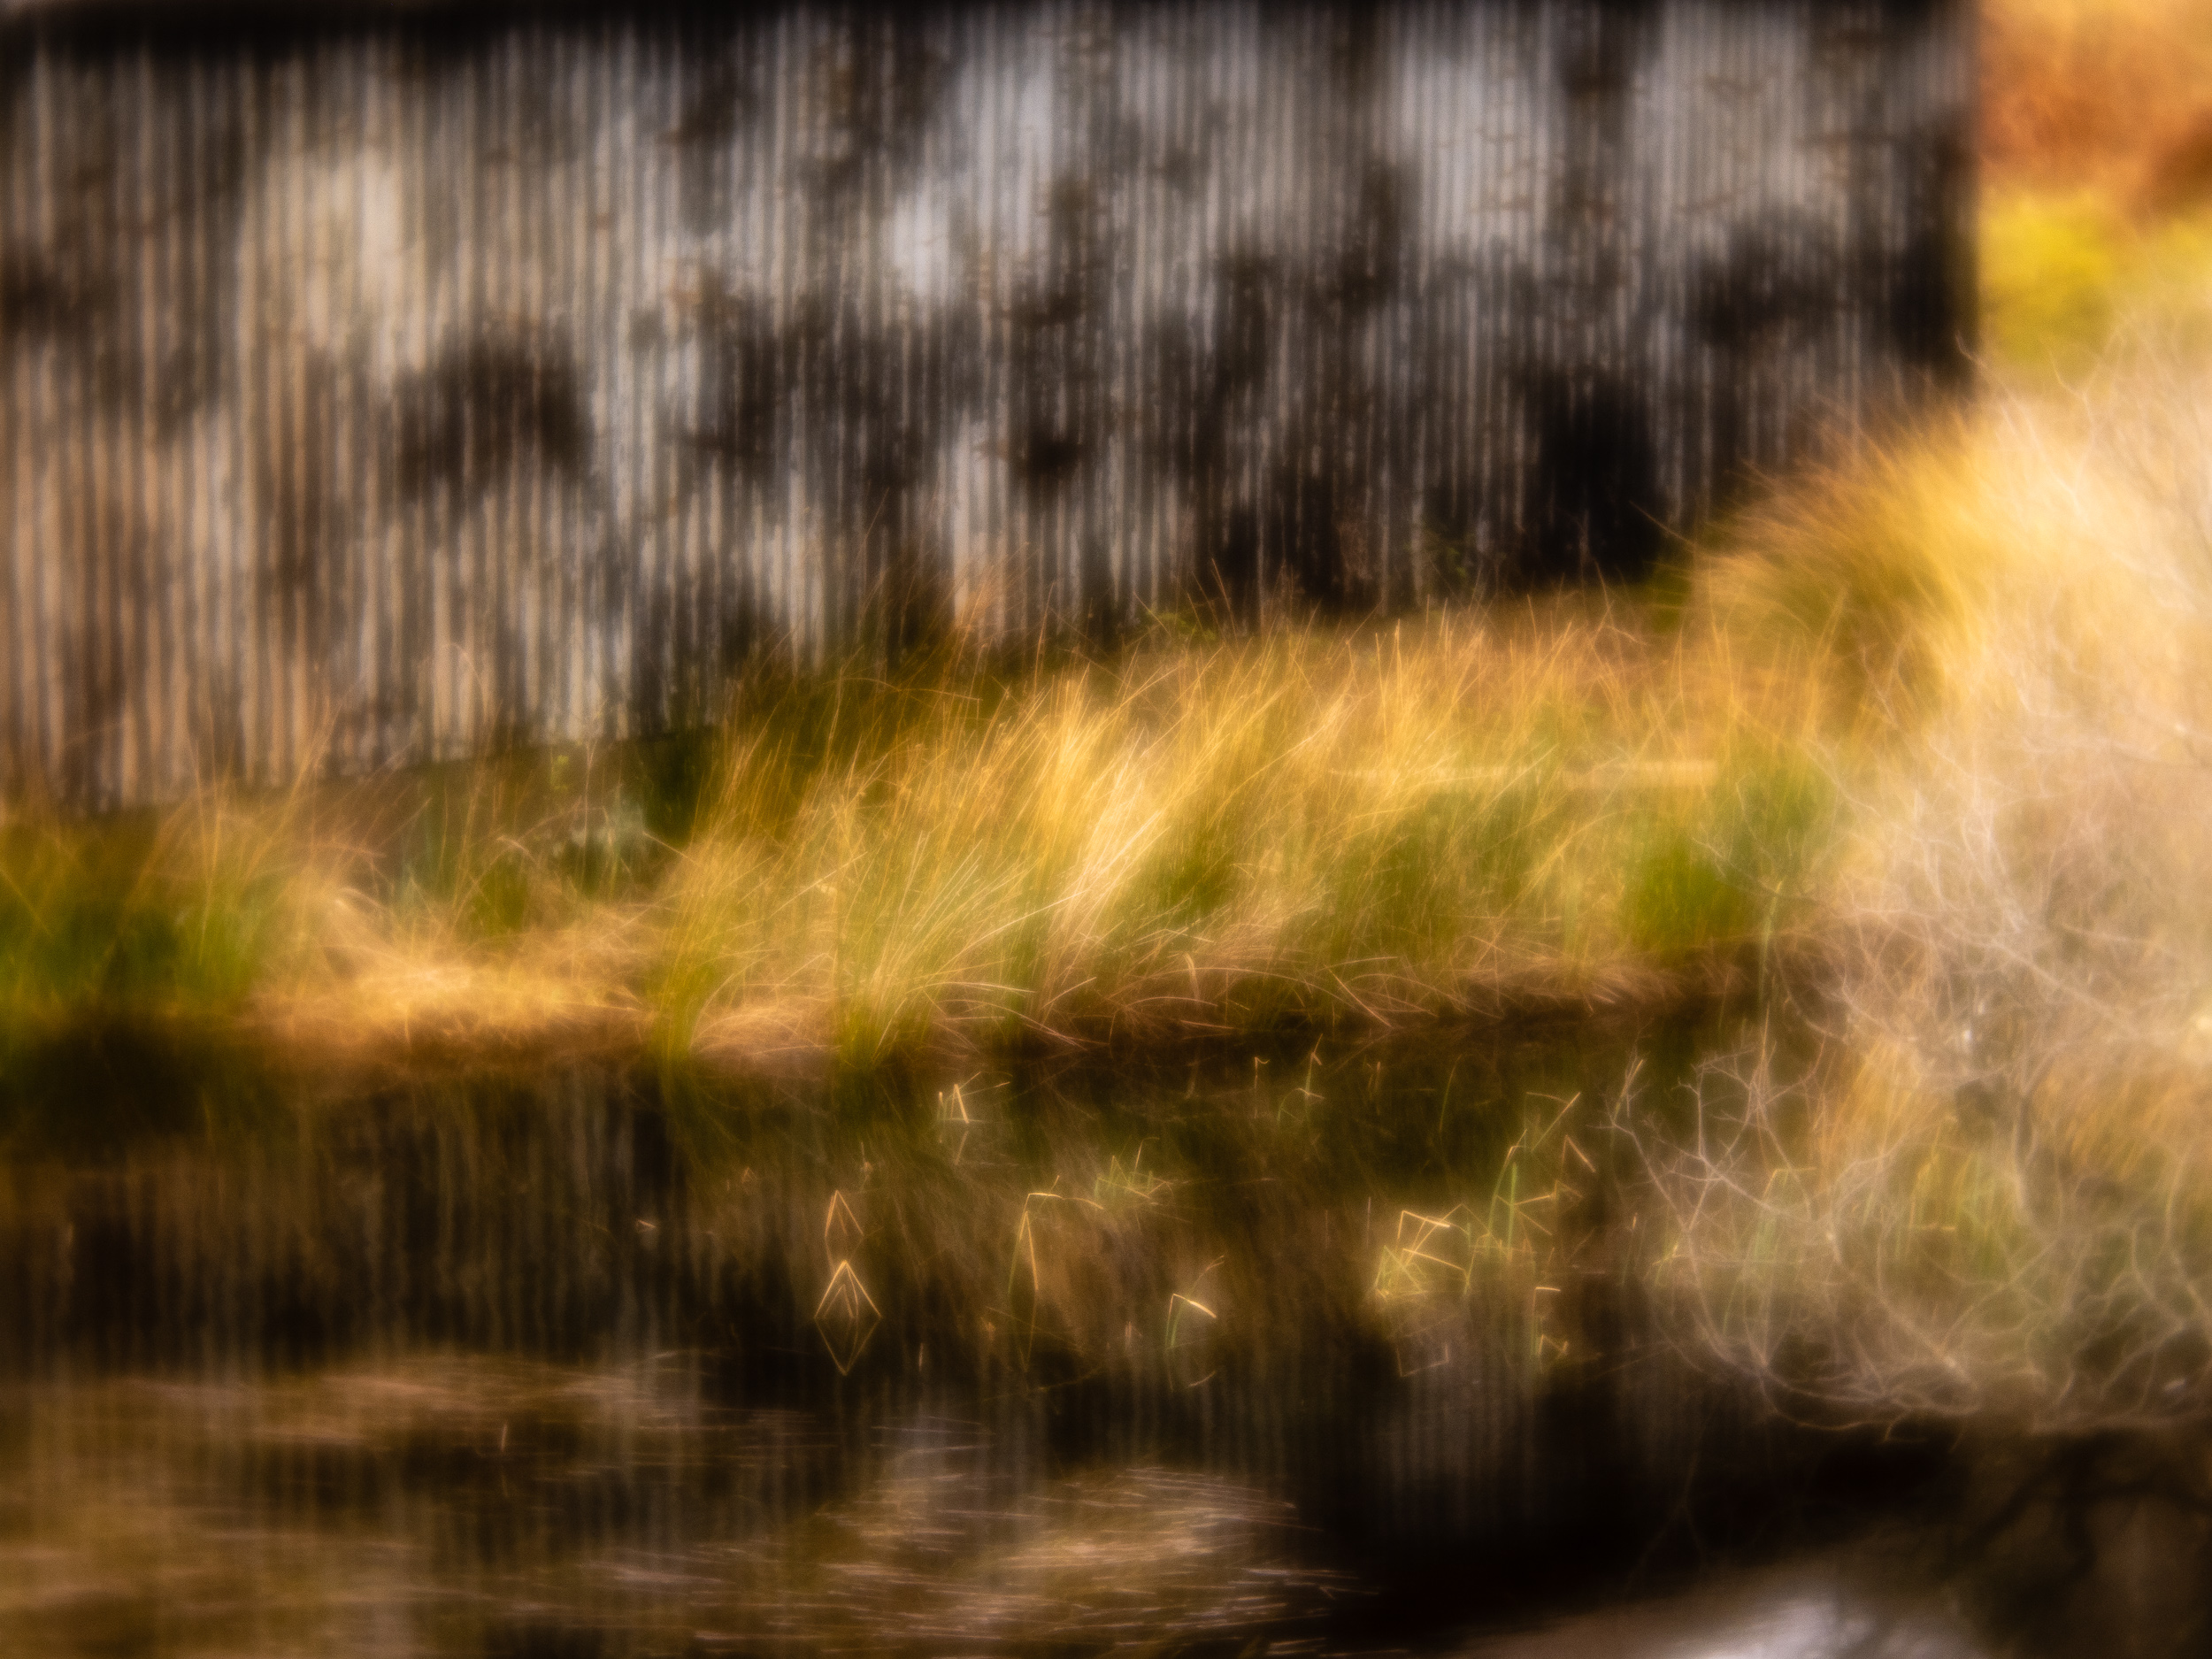 - A rather distorted view that highlights the grasses and the textures in the shed seemed apposite.